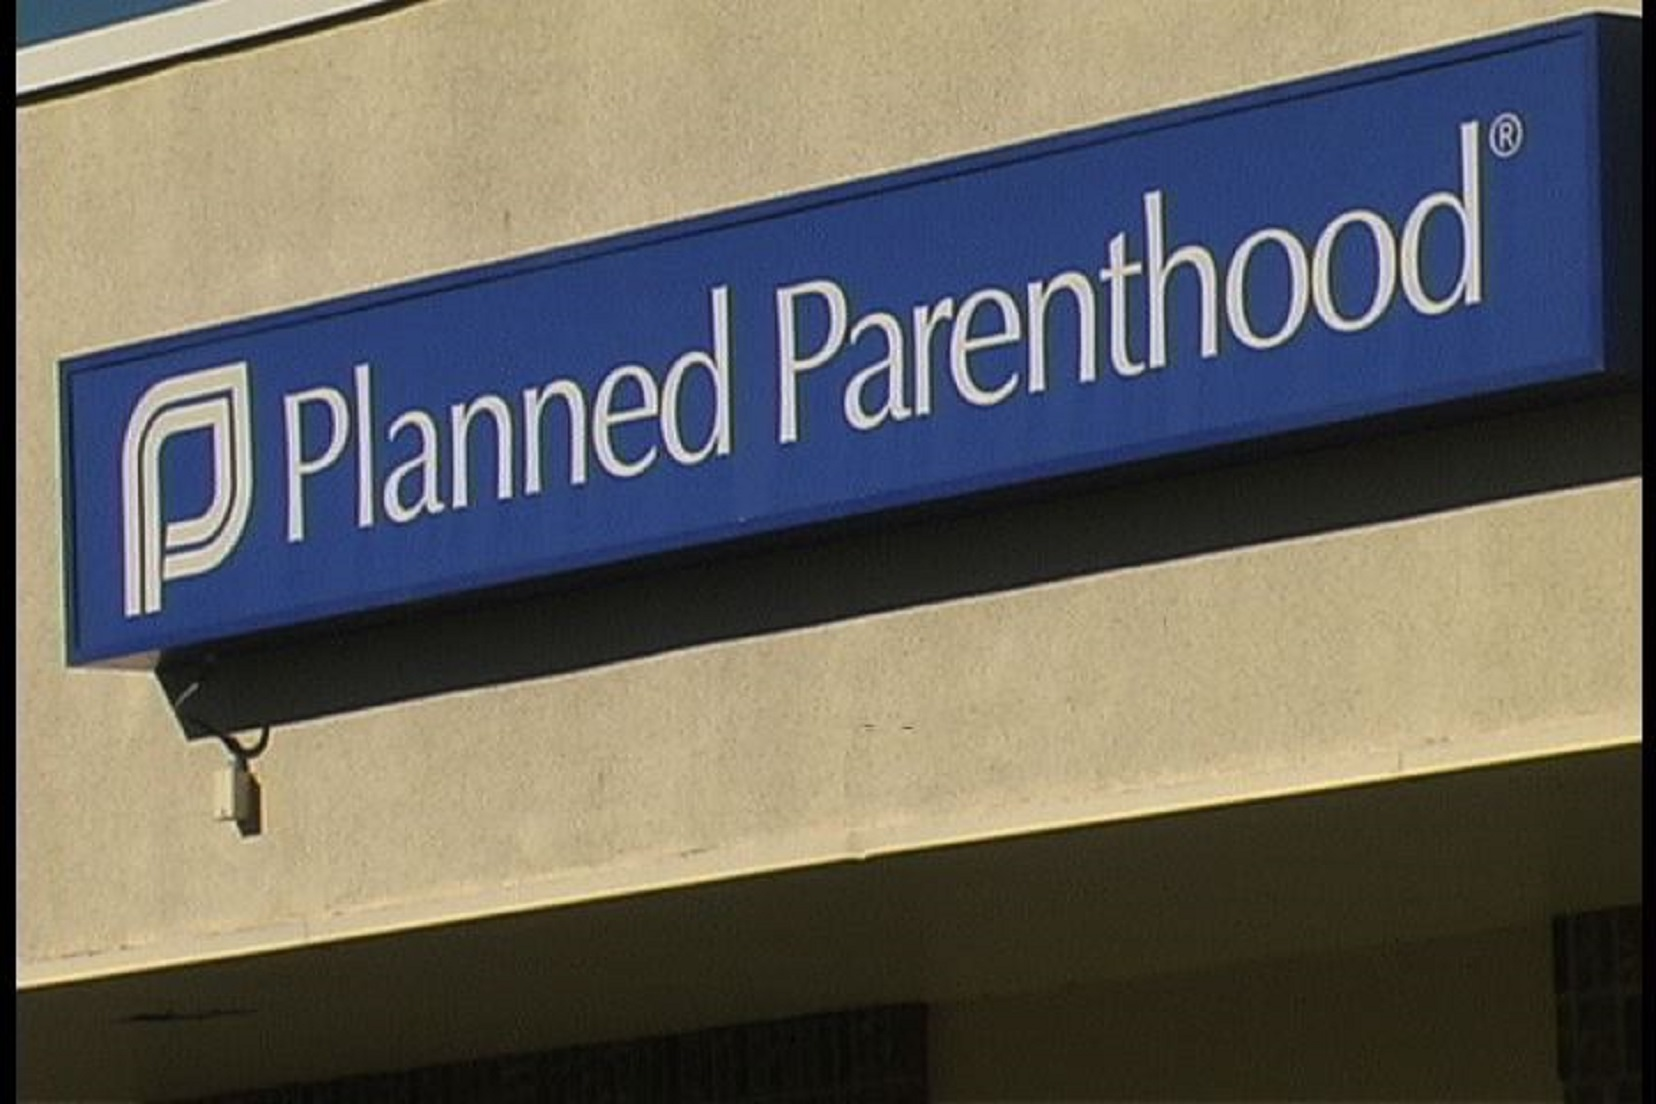 Planned Parenthood, abortion foes have long Kansas history